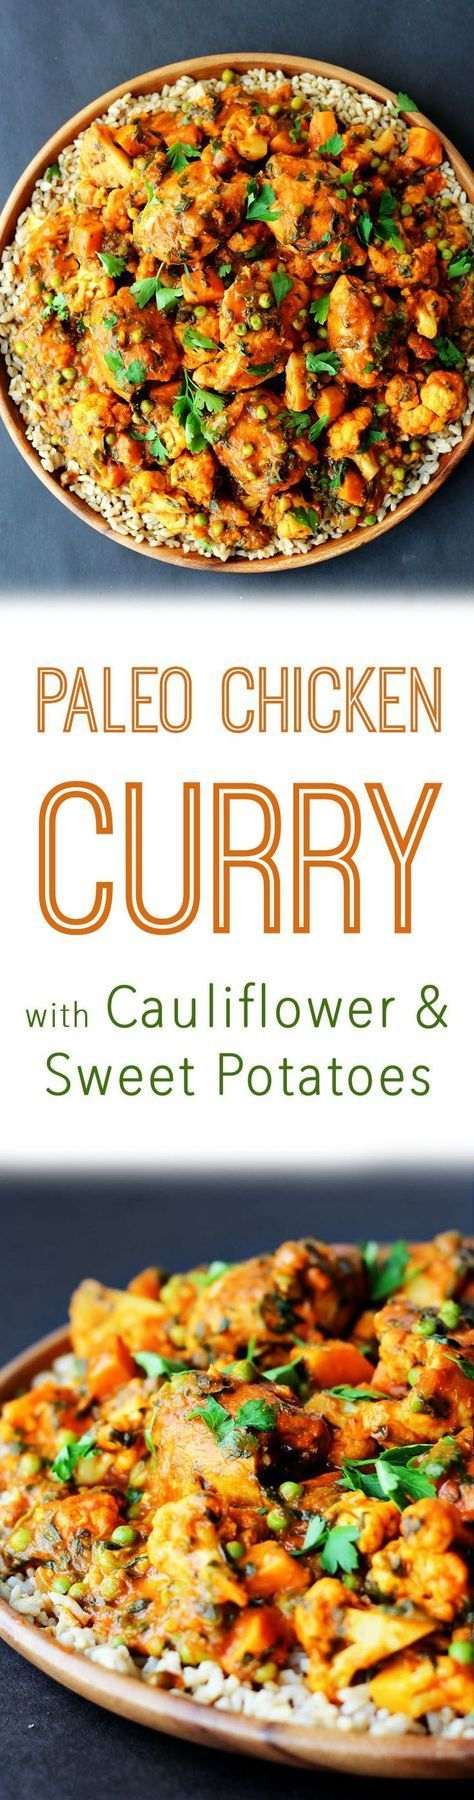 1000 ideas about chicken curry on pinterest fish curry recipe and curry recipes - Apprendre a cuisiner japonais ...